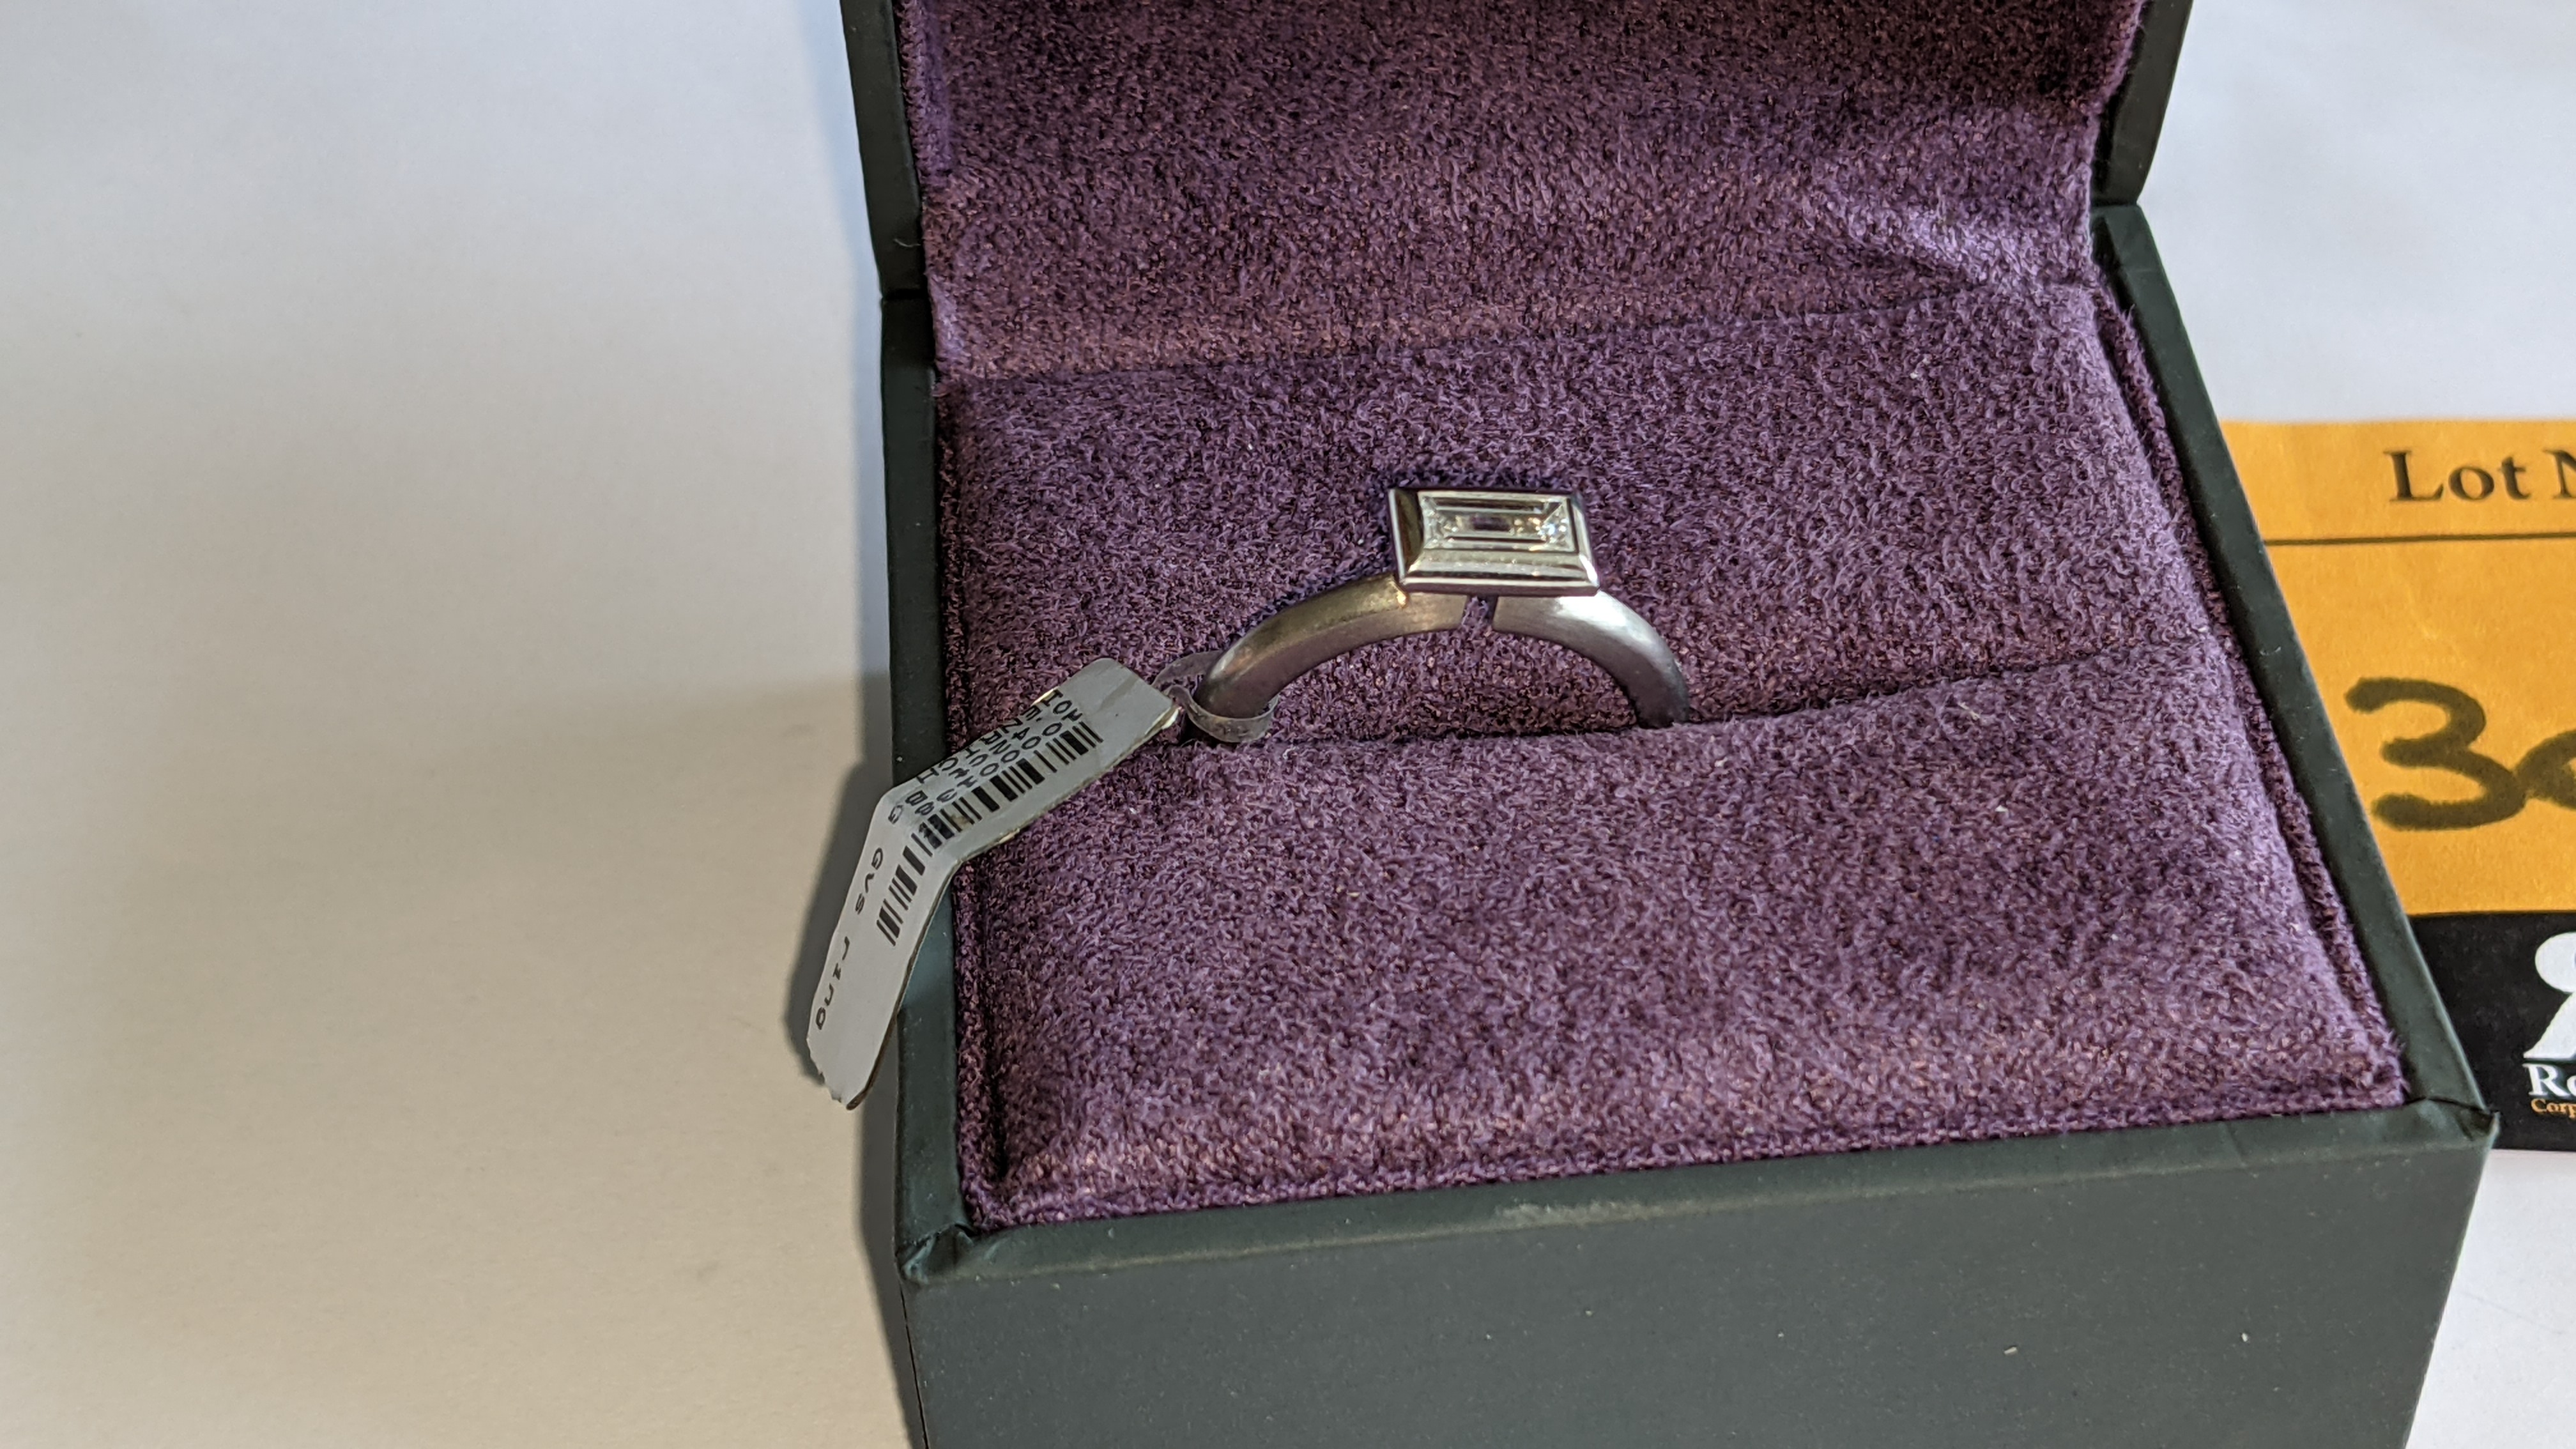 Modern platinum 950 & diamond ring with 0.42ct centrally mounted stone. RRP £4,677 - Image 3 of 18